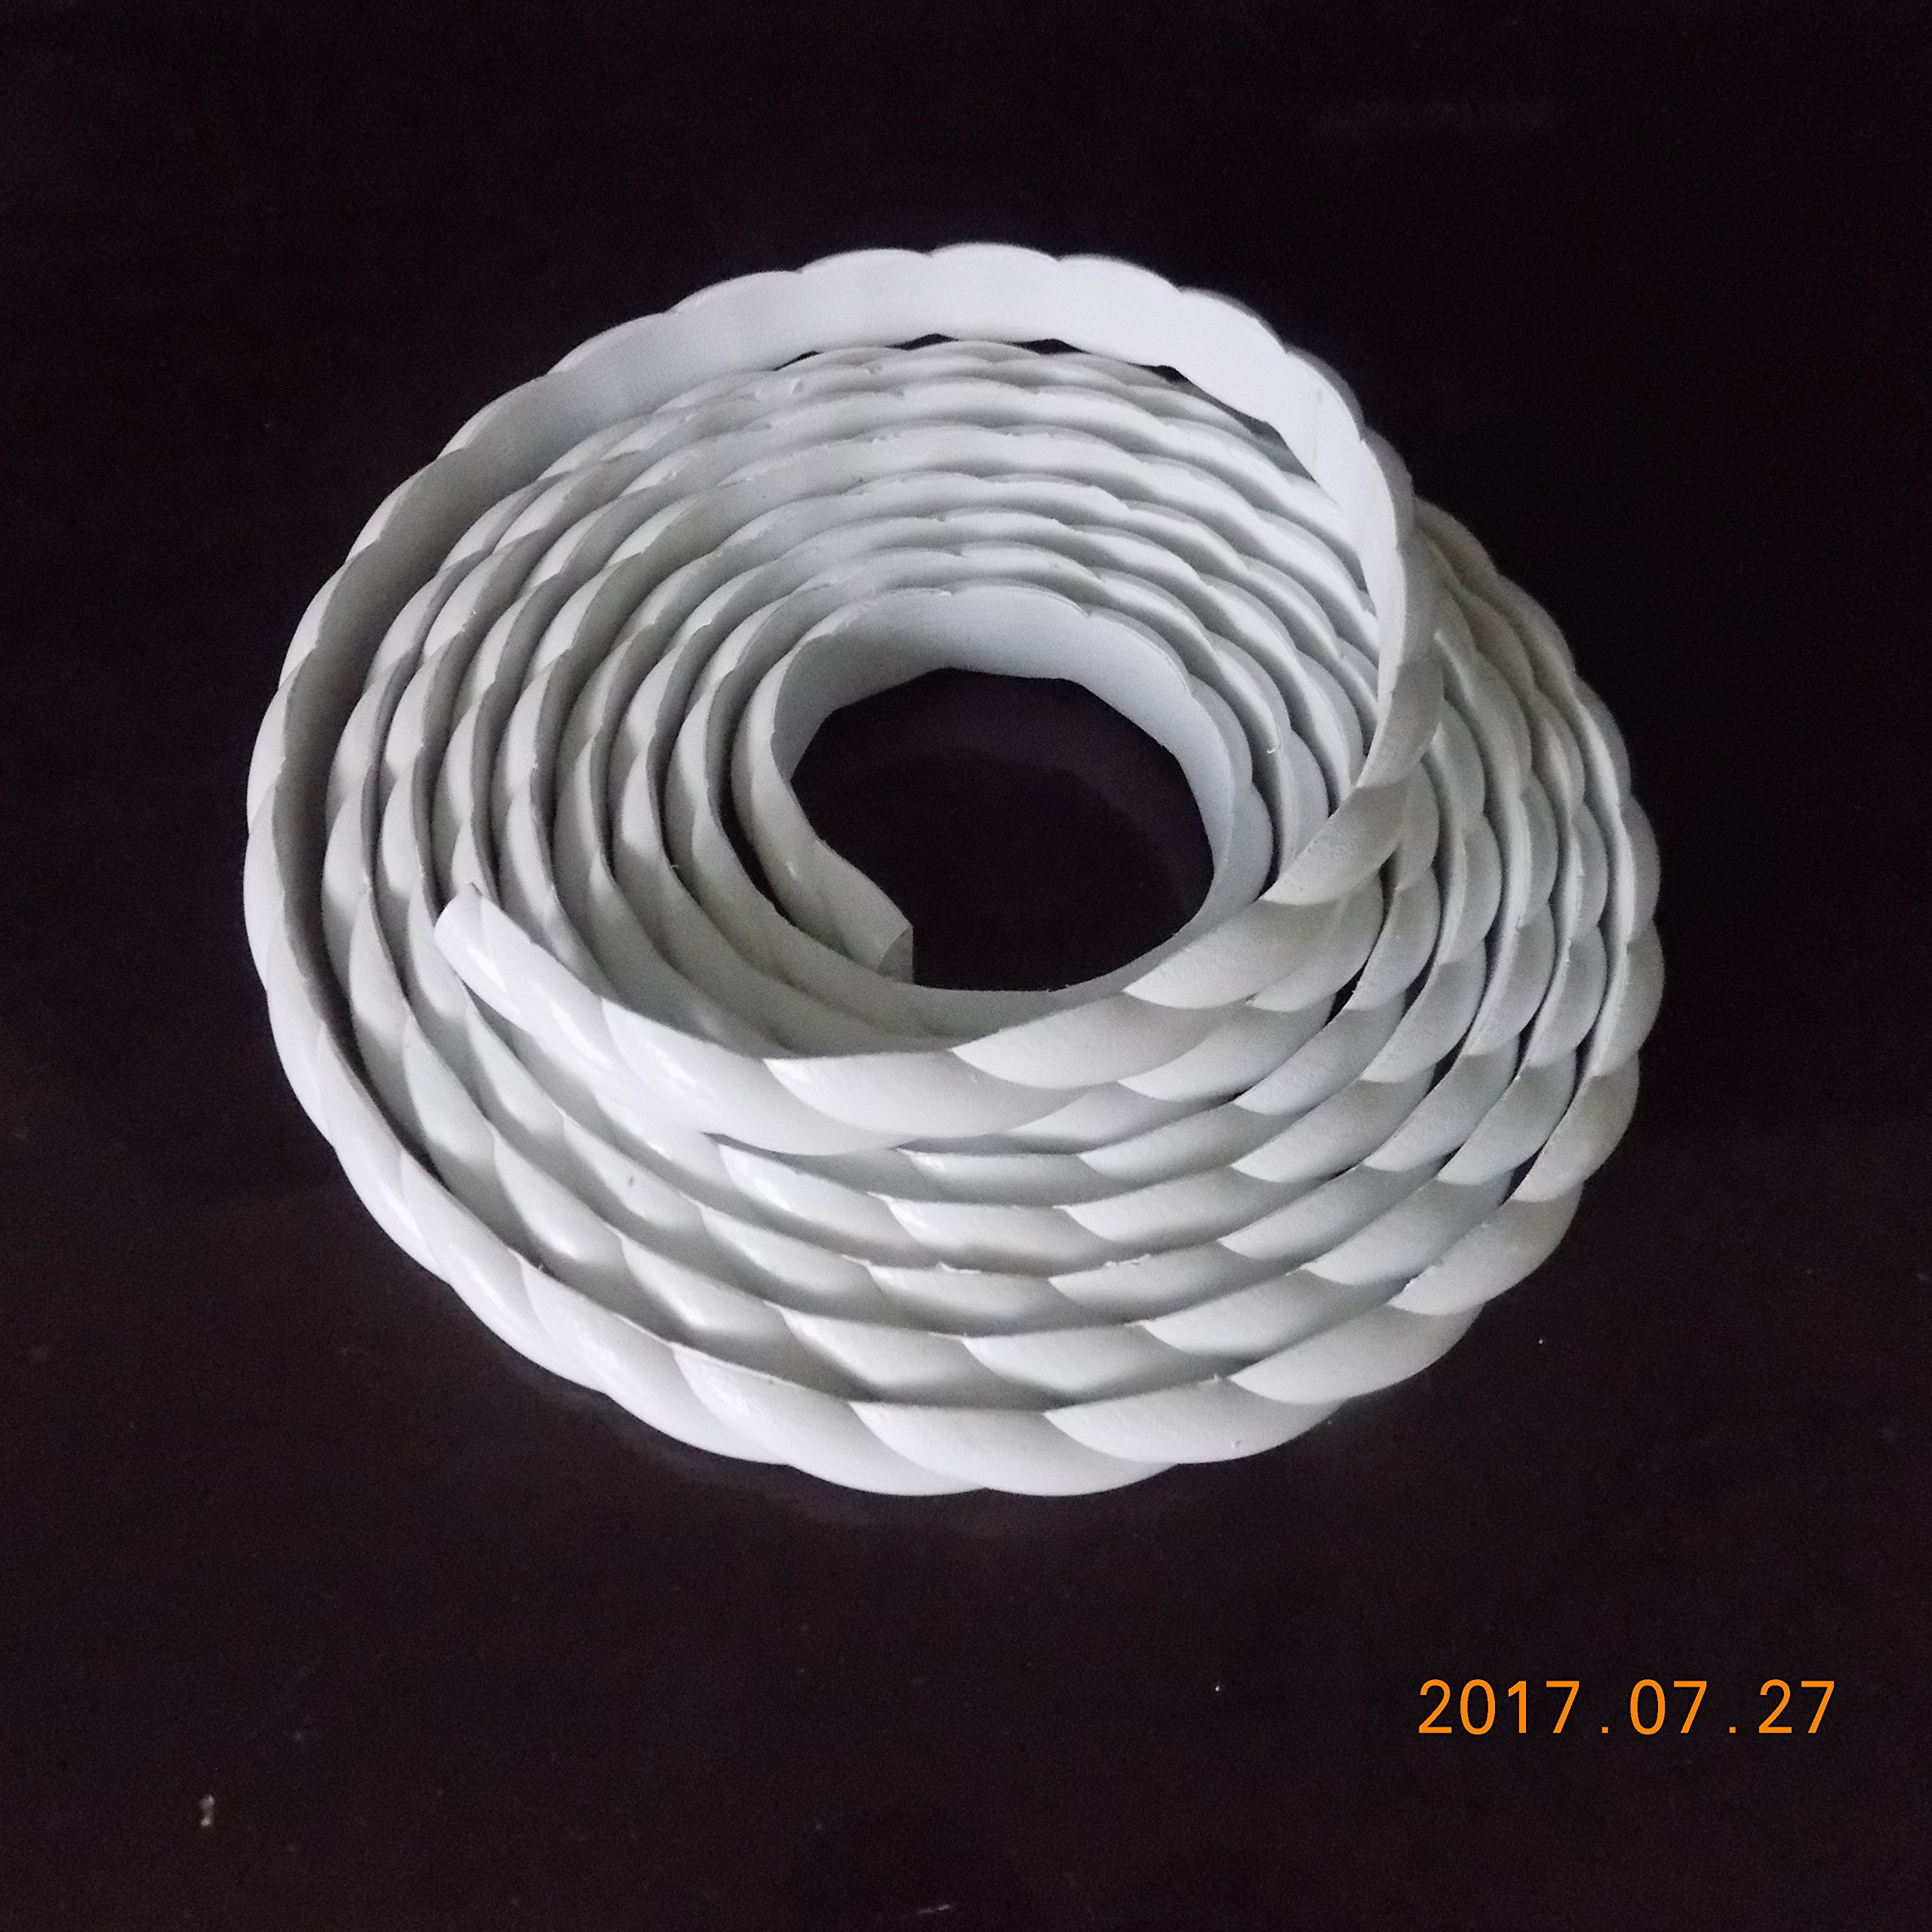 Home Wall Door Flexible Molding Trim Cabinet Edge Rope Mouldings 0.6inch (1.5cm) x 115 inch x Thickness 0.27 inch